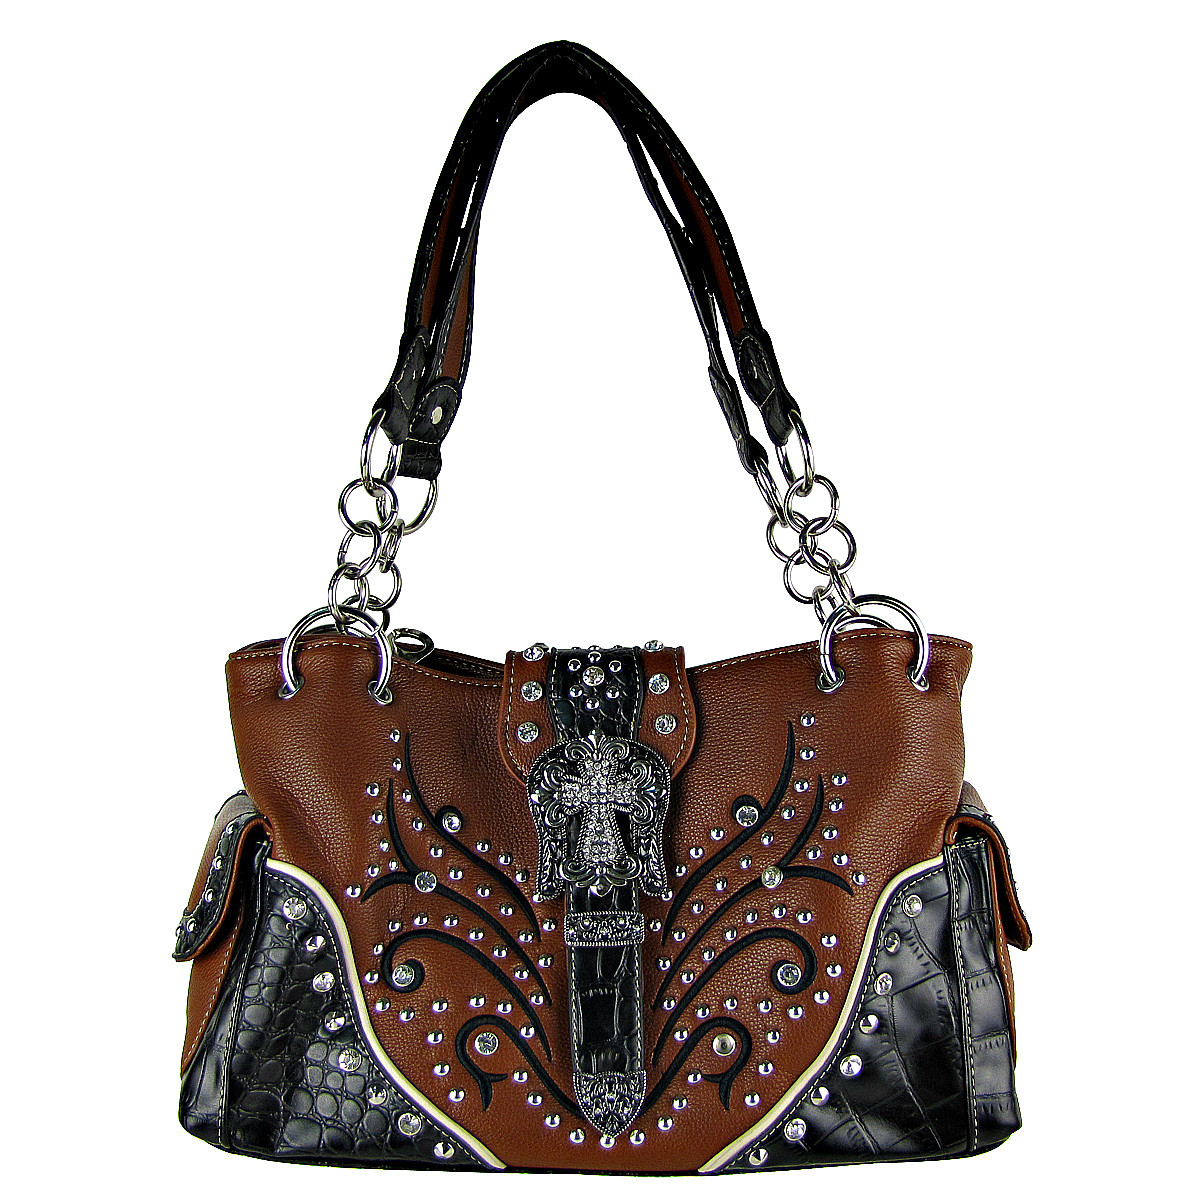 BROWN STUDDED RHINESTONE CROSS BUCKLE LOOK SHOULDER HANDBAG HB1-HL12174-1BRN